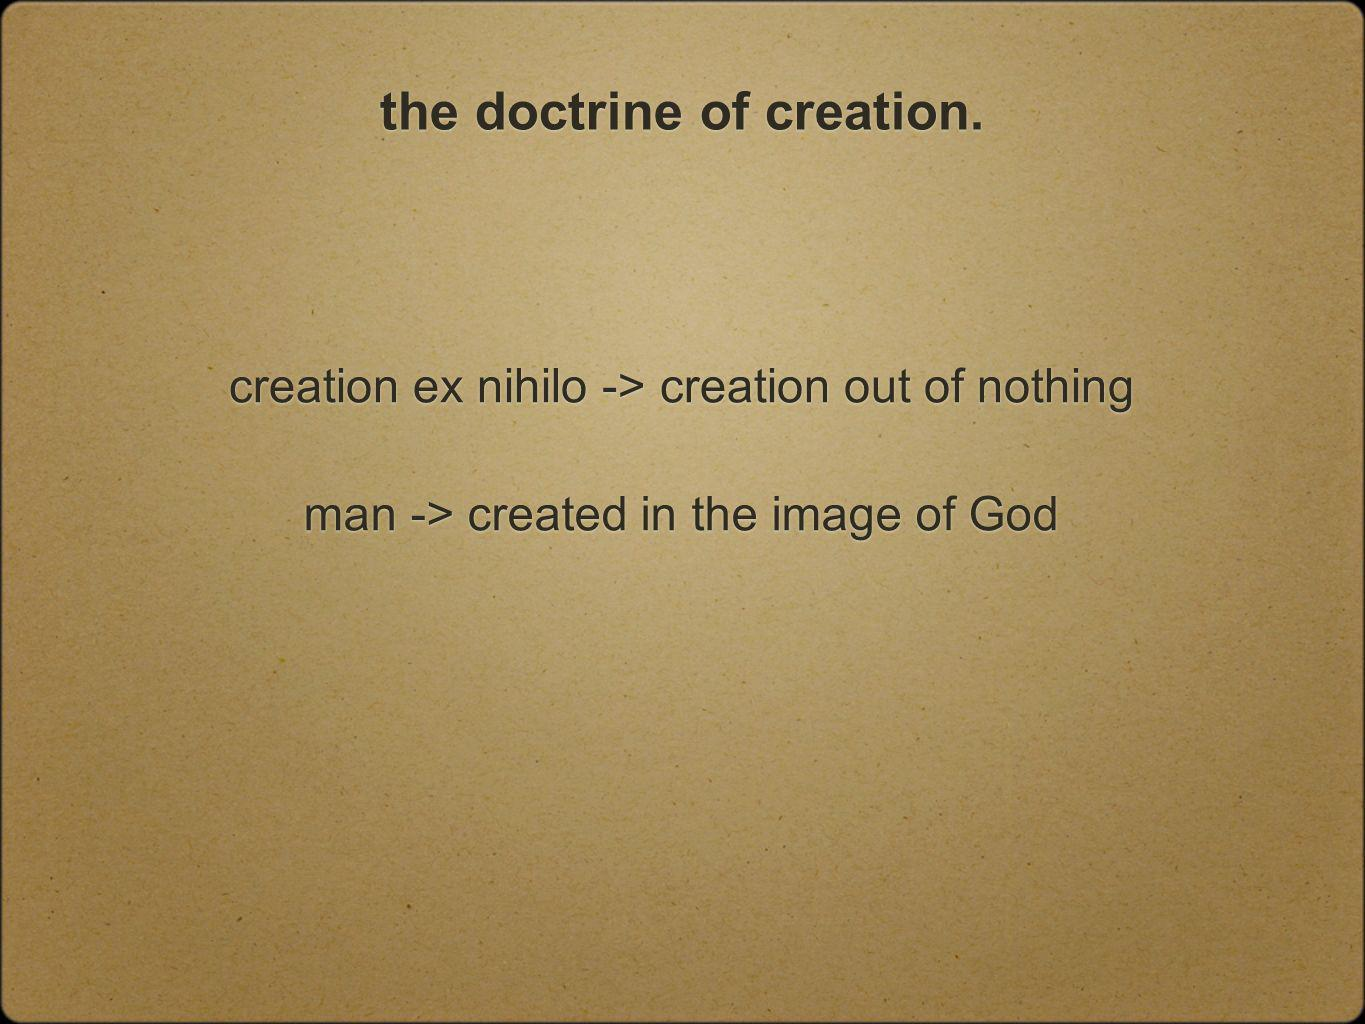 the doctrine of creation.